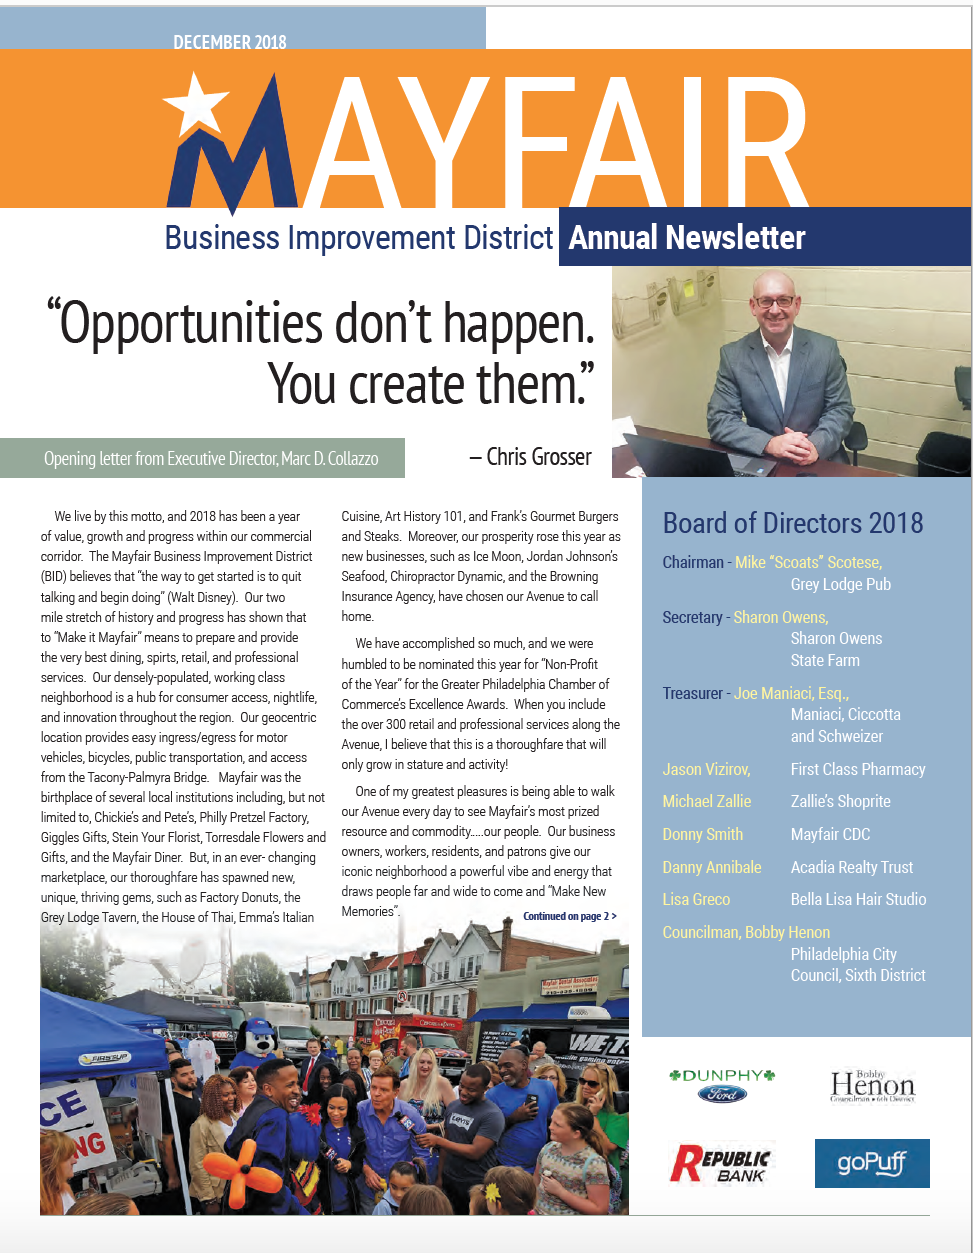 Mayfair Business Improvement District 2018 Annual Report